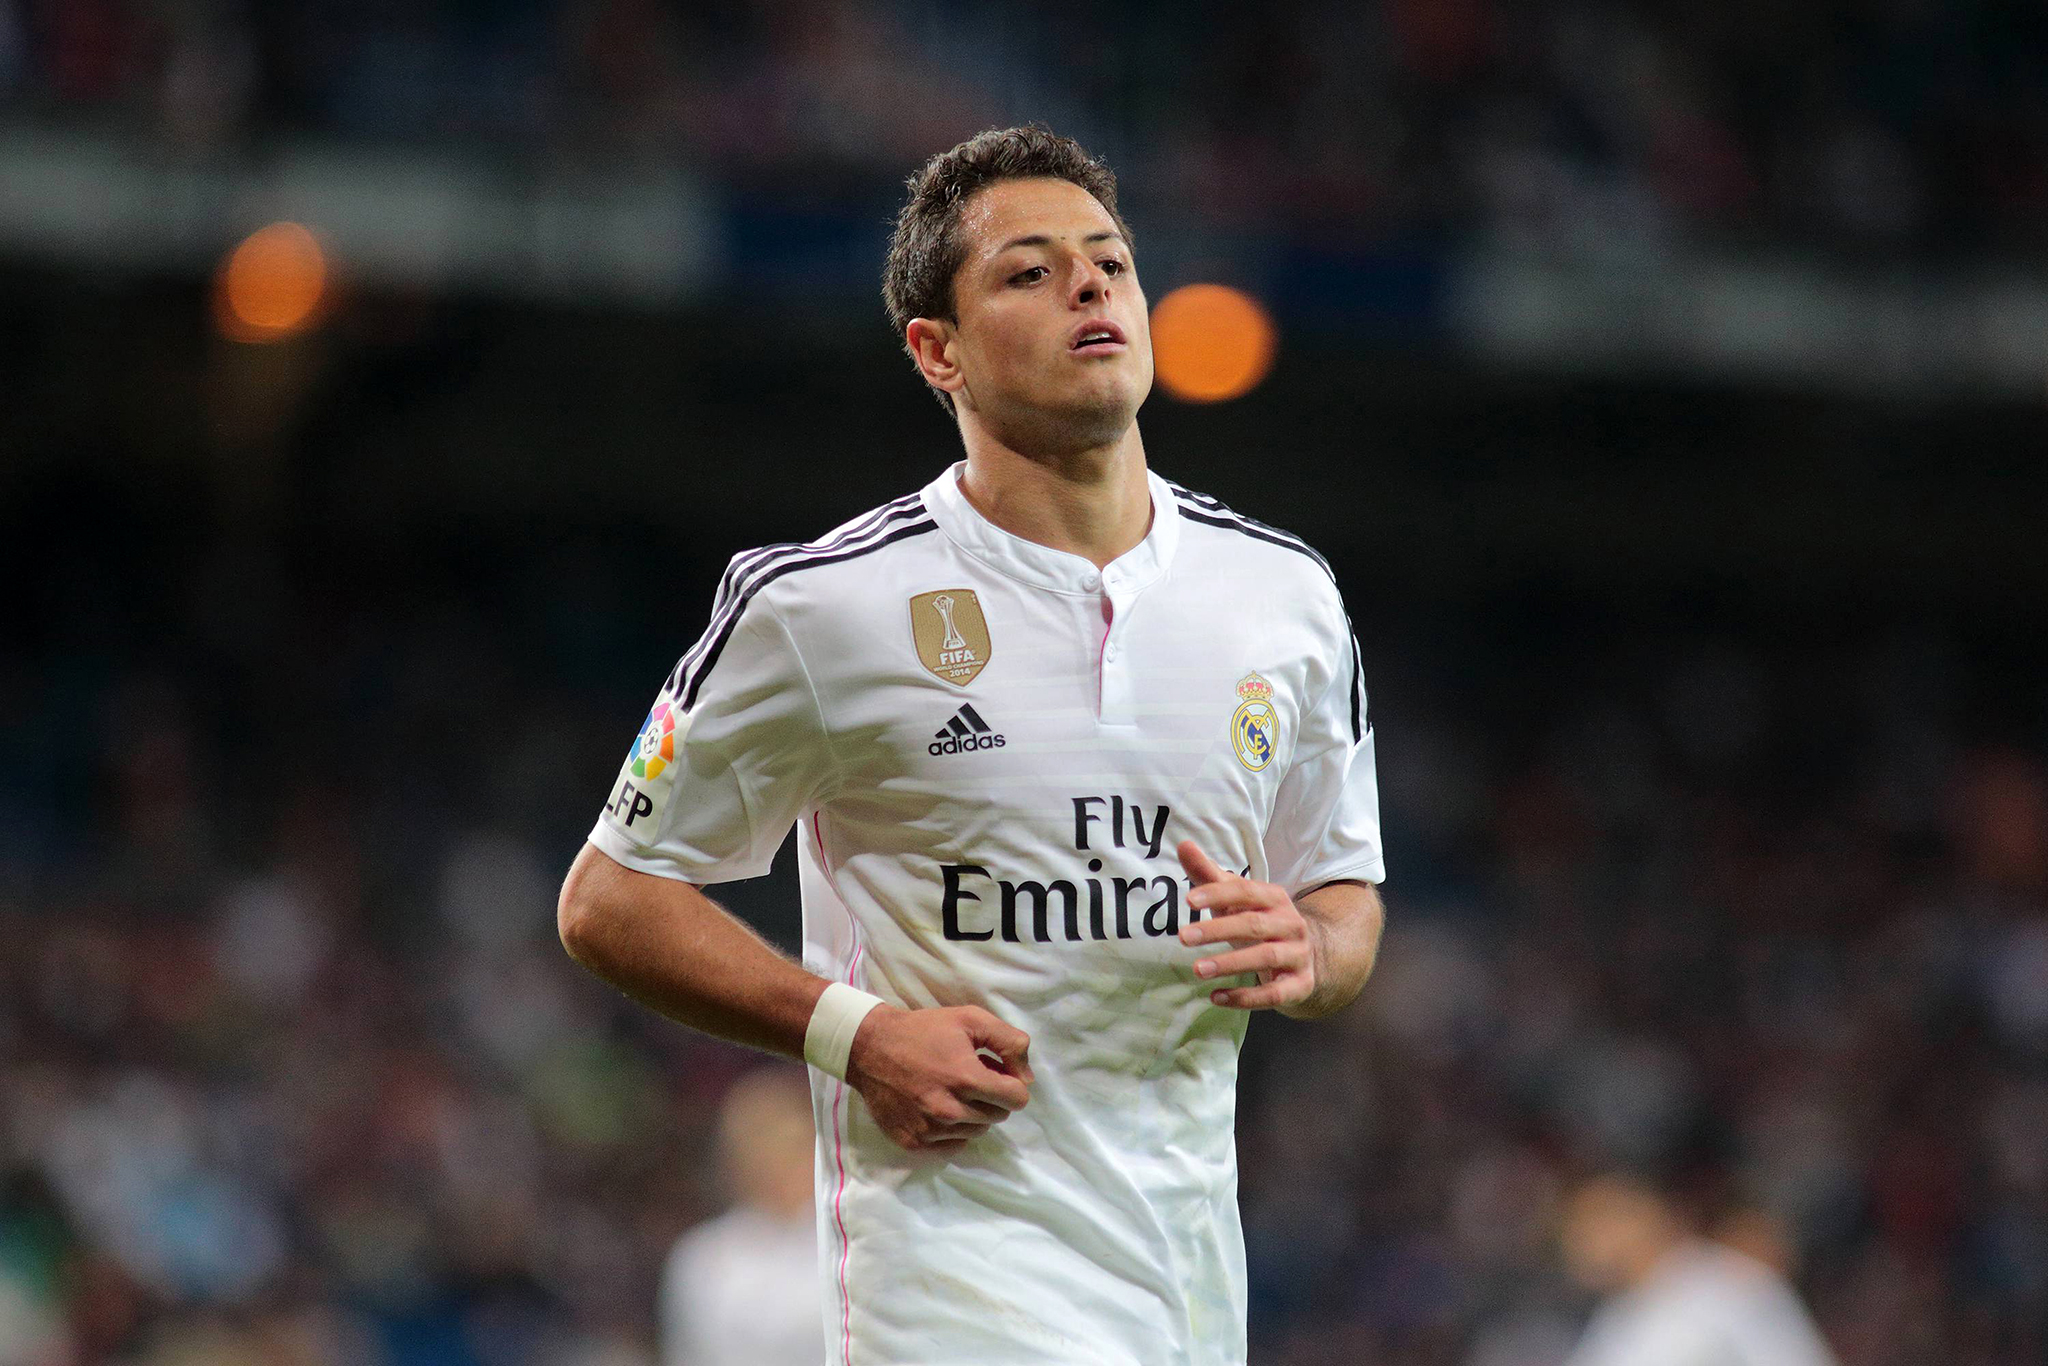 new concept f3c9c 621b4 Chicharito le costó 6 millones al Real Madrid - Futbol Total